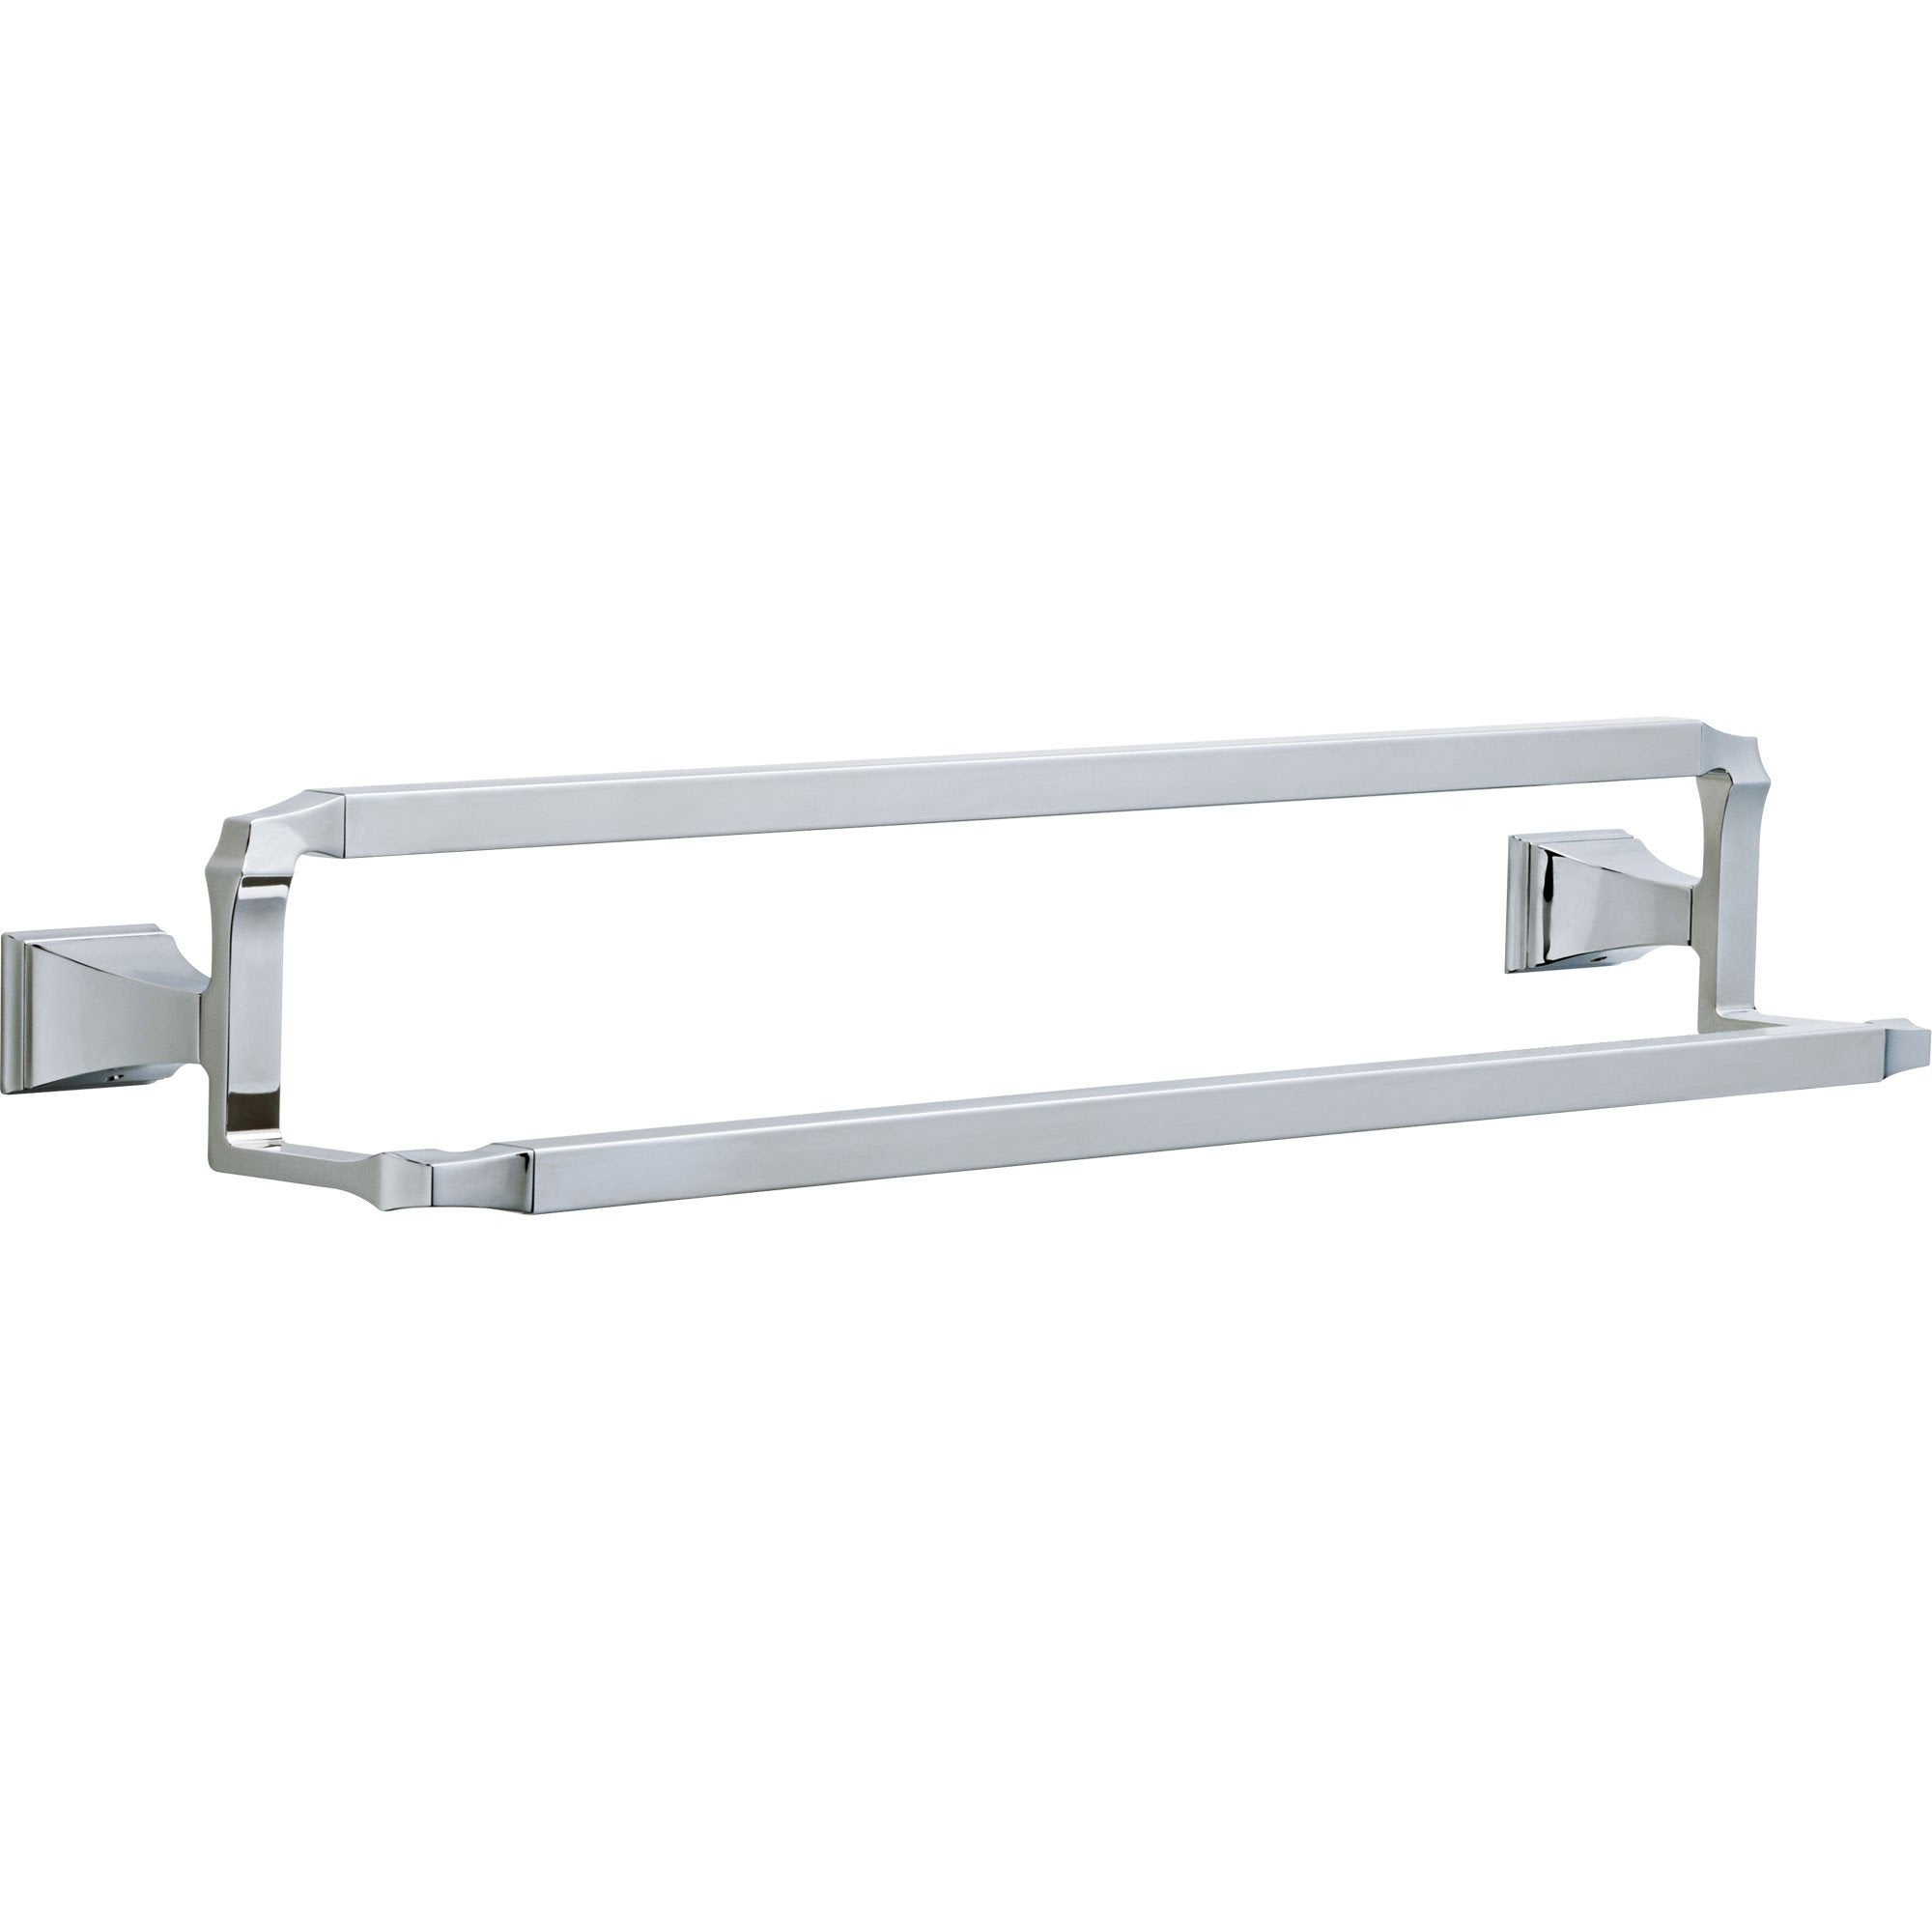 Delta Dryden Modern Chrome 24 inch Double Towel Bar 637080